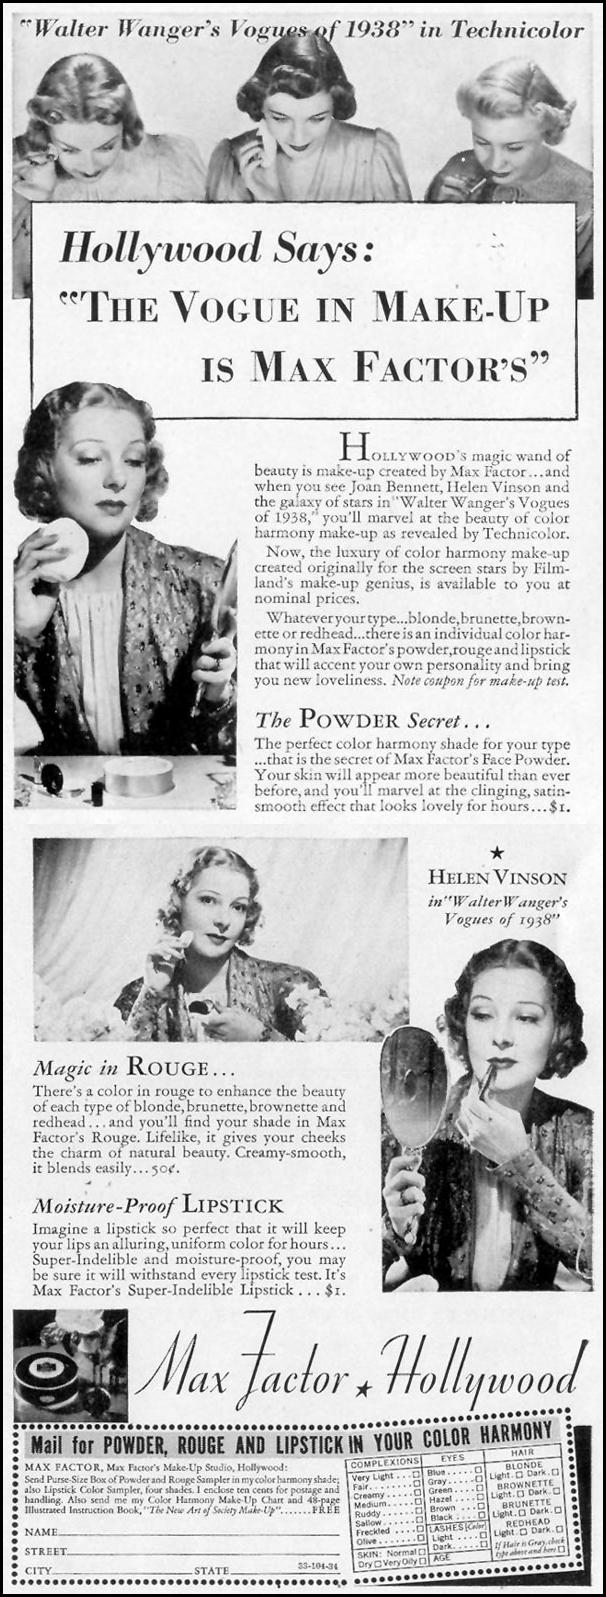 MAX FACTOR MAKE-UP LIFE 10/04/1937 p. 10